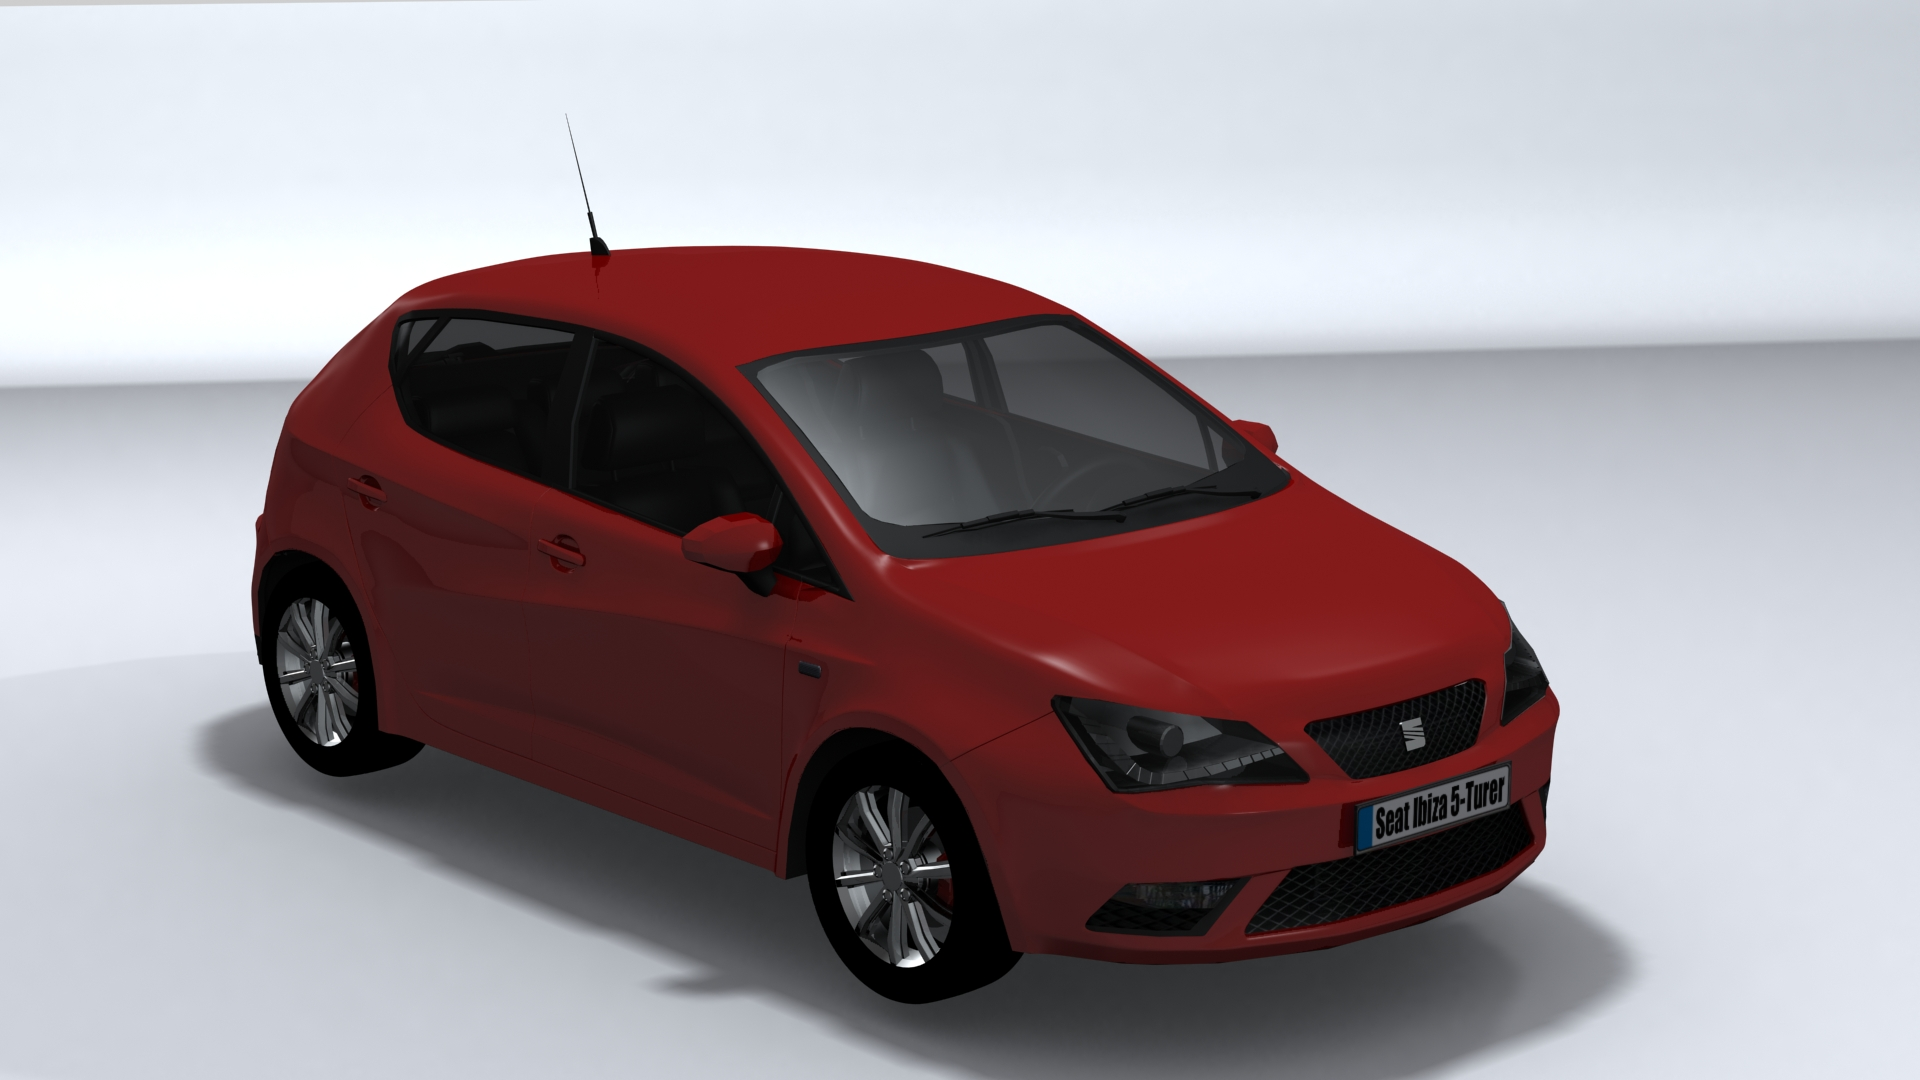 seat ibiza 2016 by salinalubna 3docean. Black Bedroom Furniture Sets. Home Design Ideas